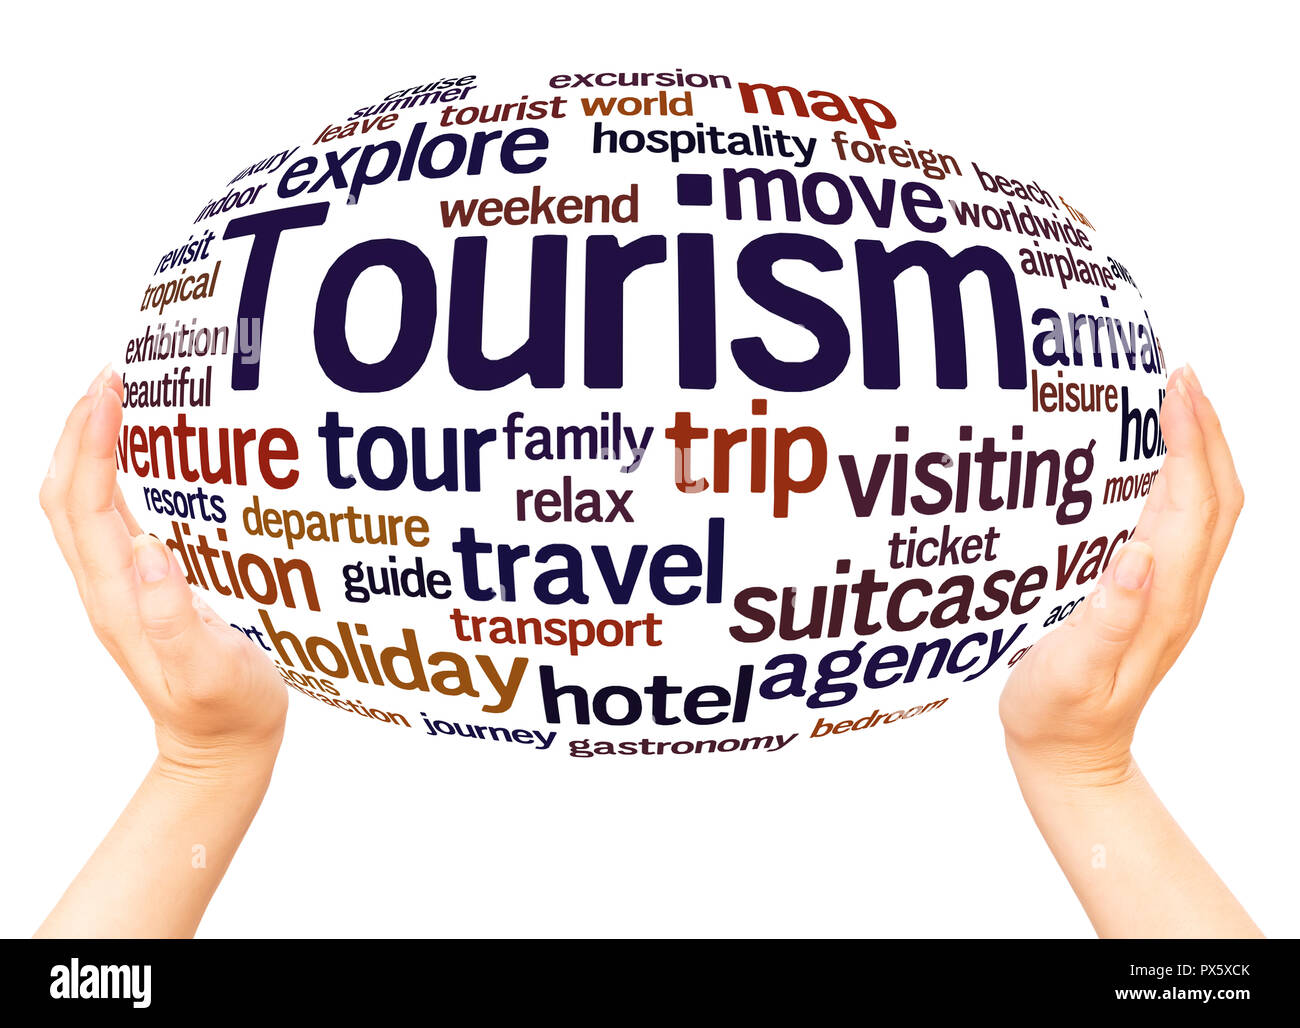 Tourism word cloud hand sphere concept on white background. - Stock Image